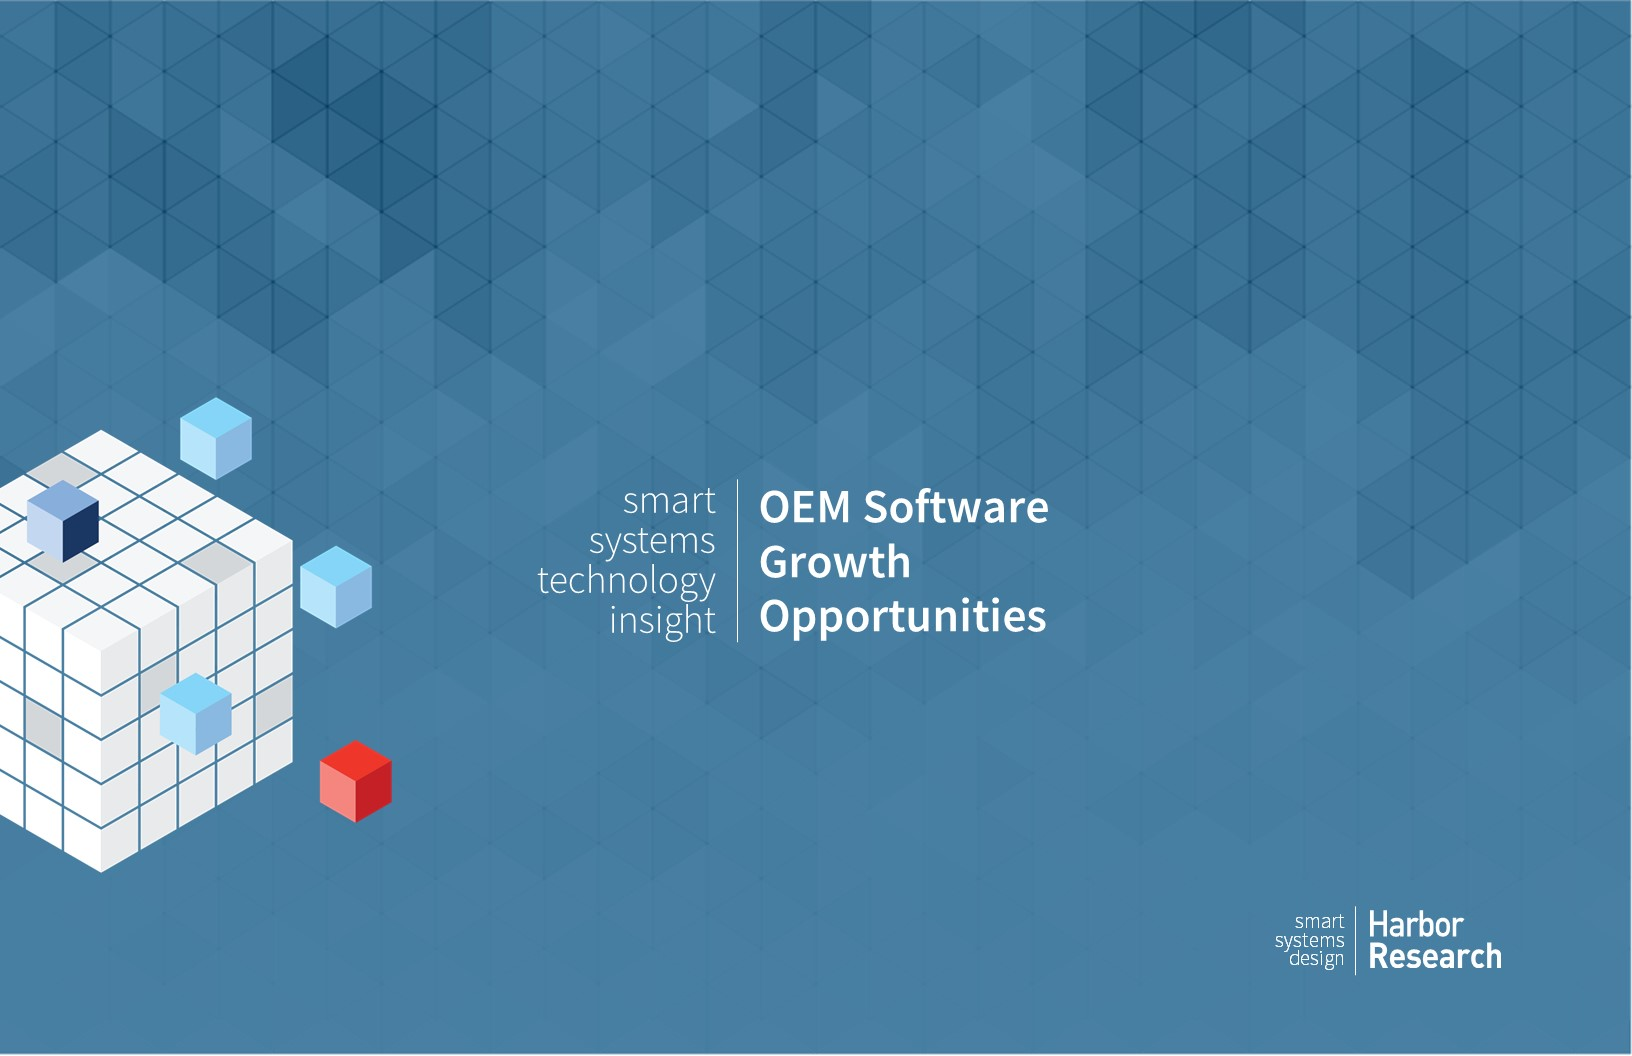 OEM Software Growth Opportunities